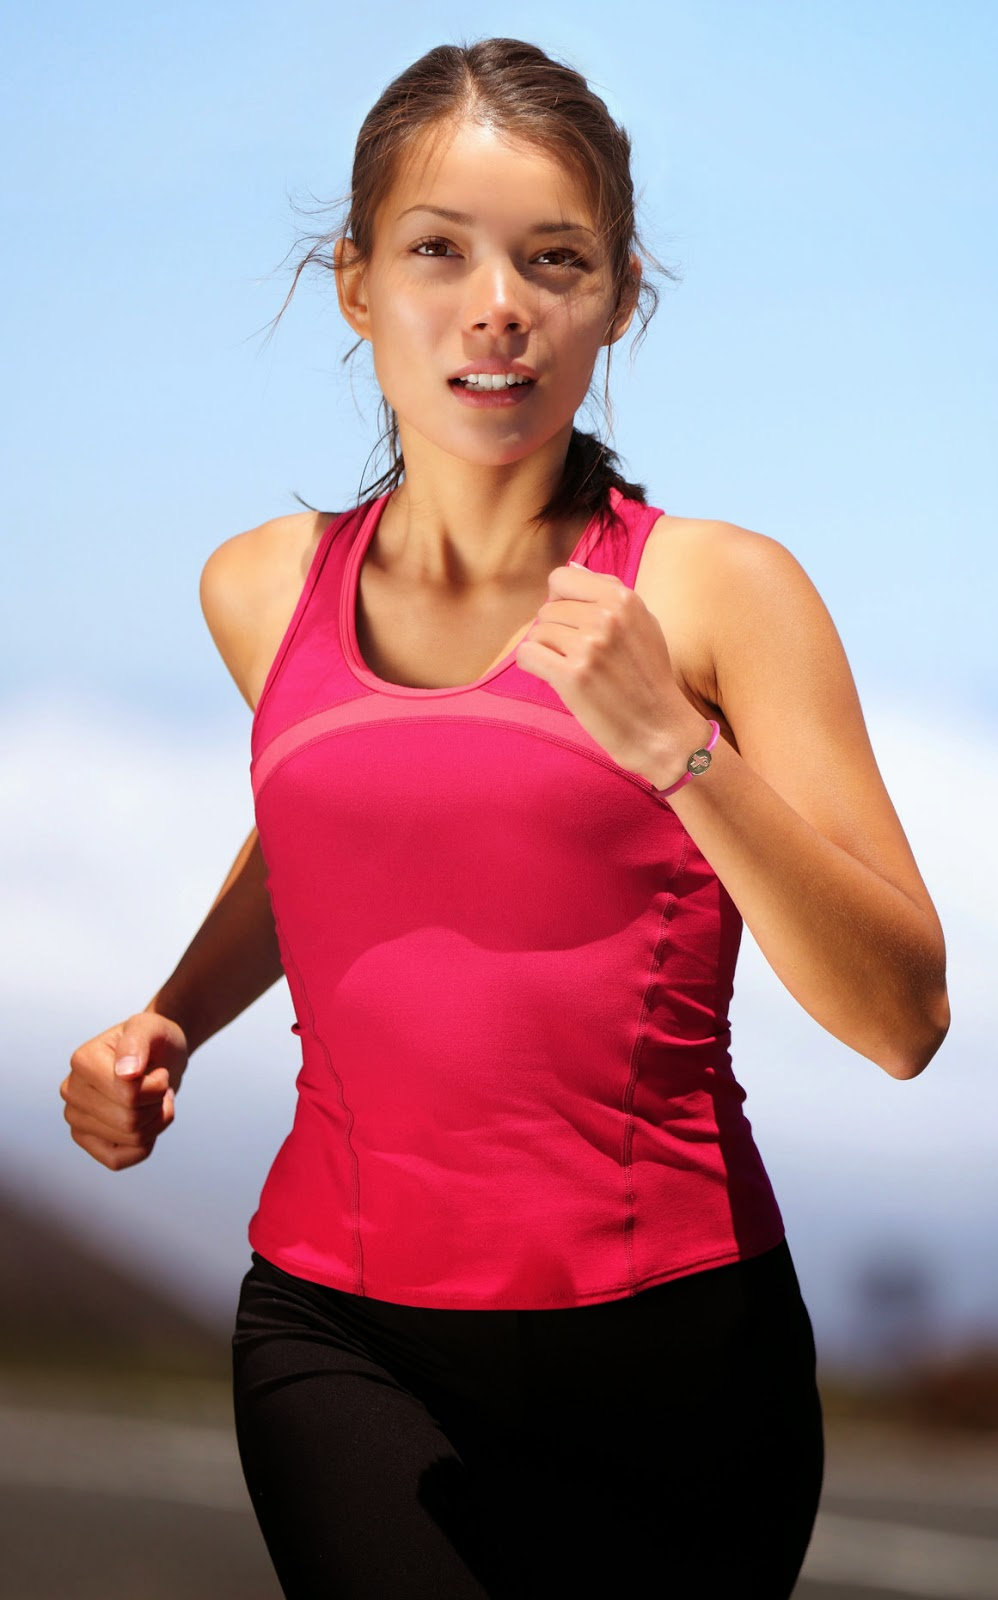 Runner Wearing Breast Cancer Awareness Bracelet